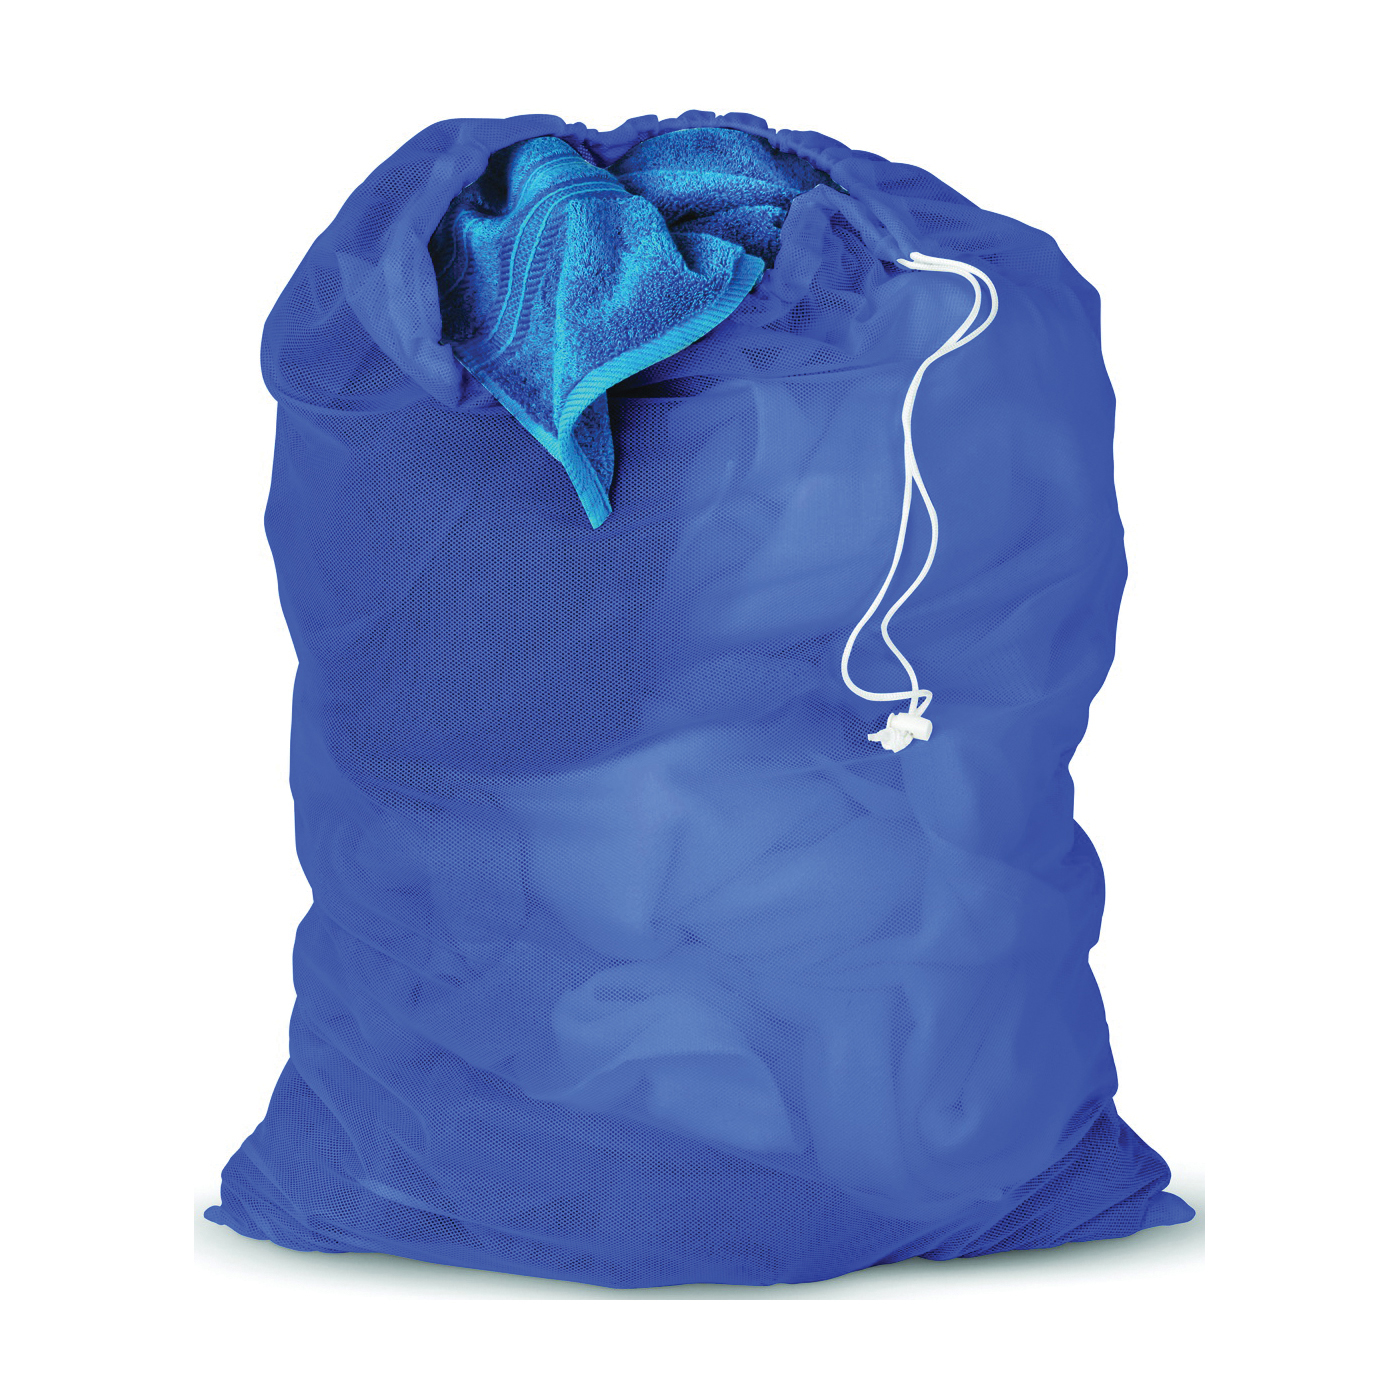 Picture of Honey-Can-Do LBG-01161 Mesh Laundry Bag, Drawstring Closure, Fabric, Blue